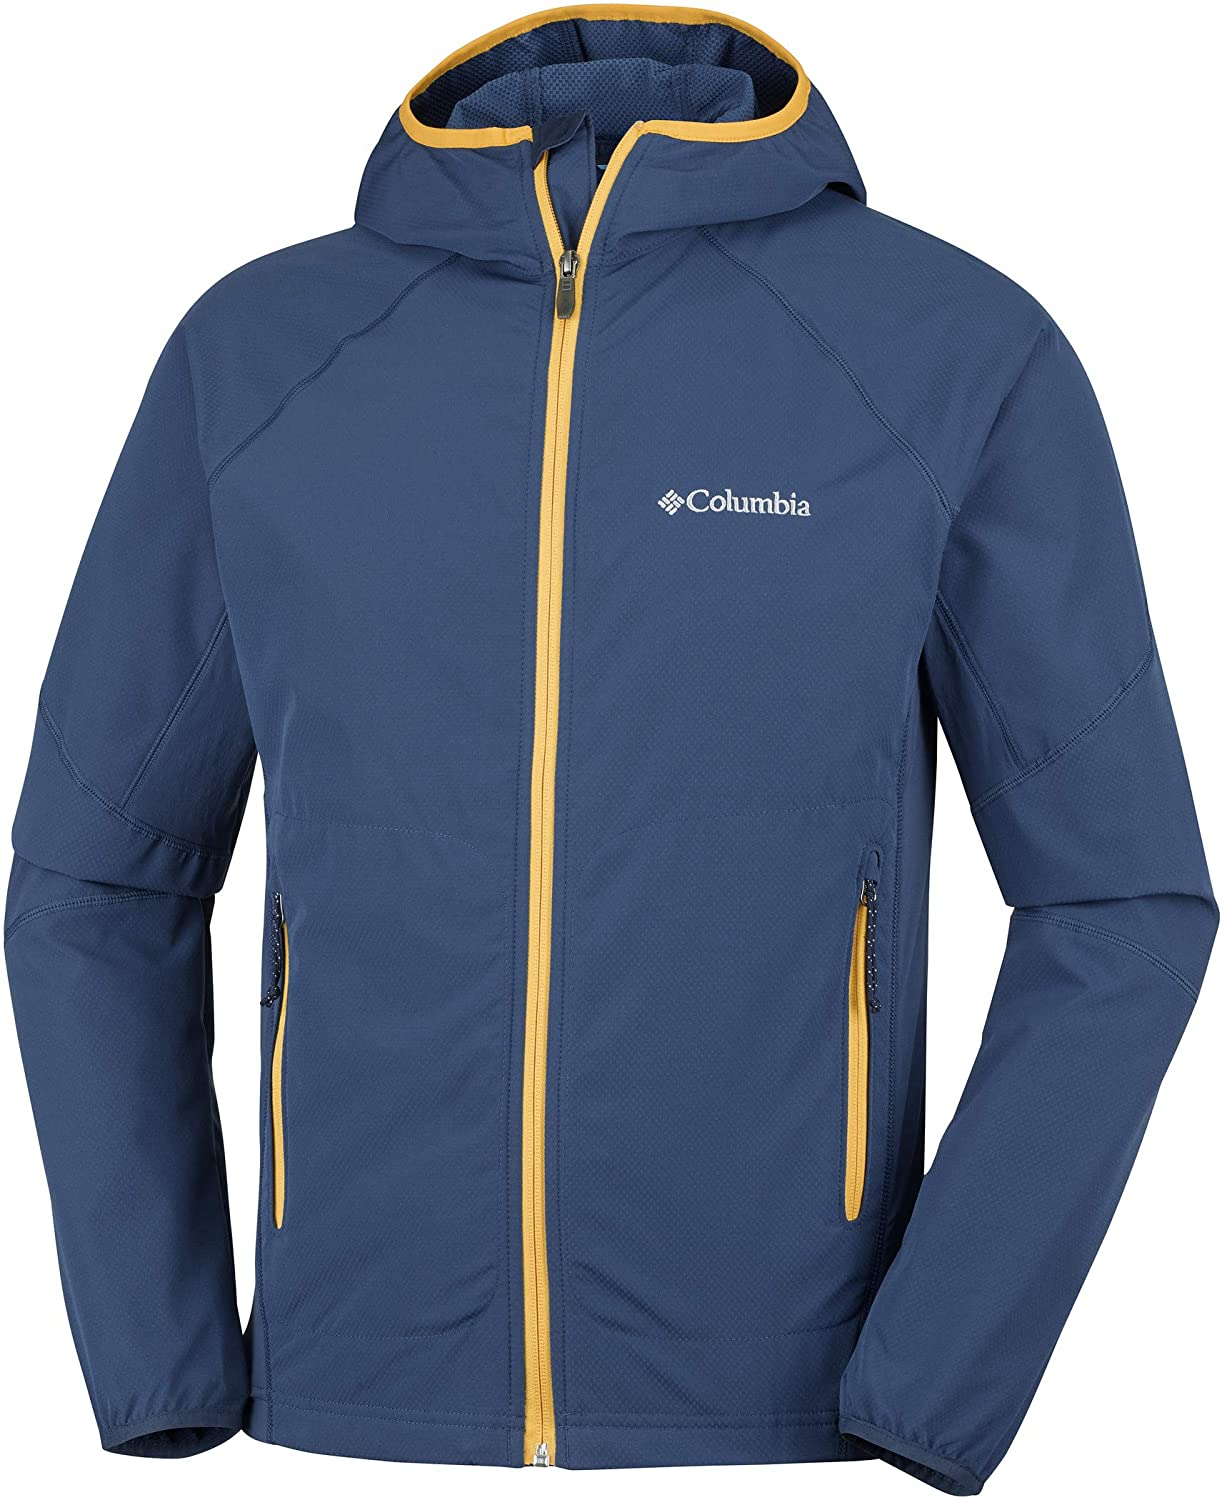 Columbia Herren Sweet As Ii Jacket